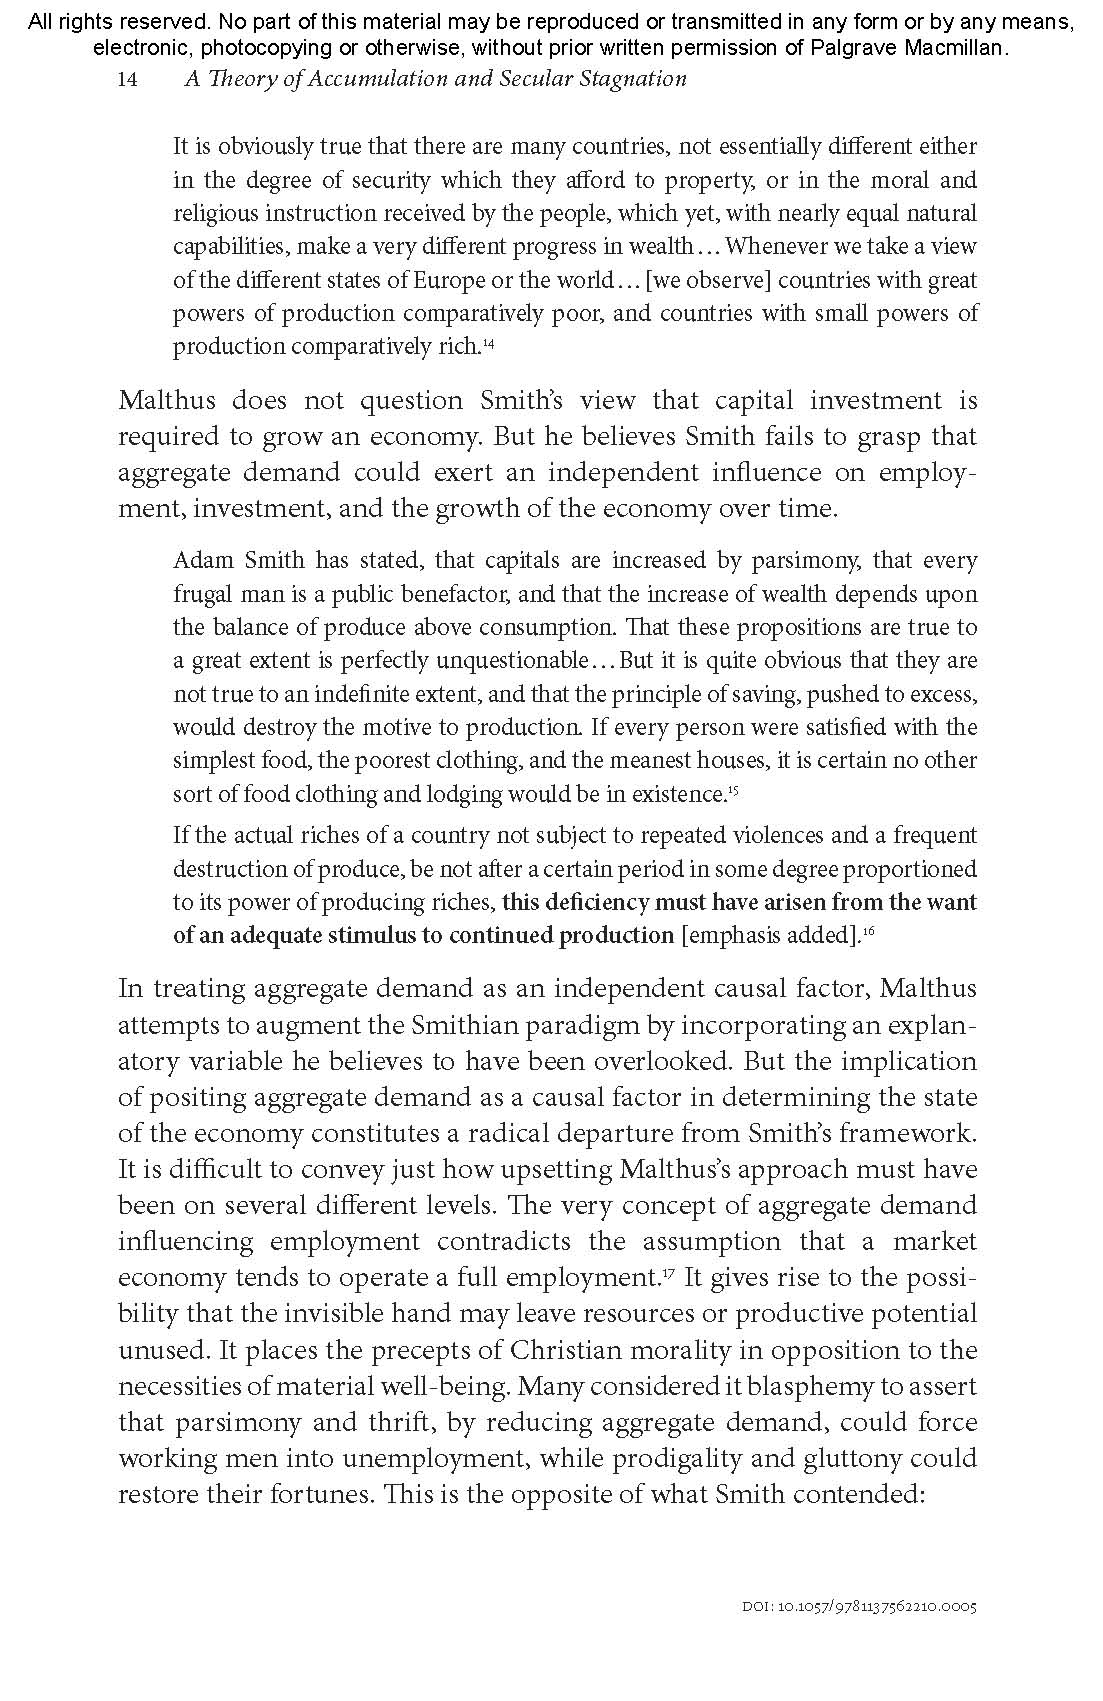 Pages from Accumulation and Secular Stagnation - pdf published book-2_Page_20.jpg